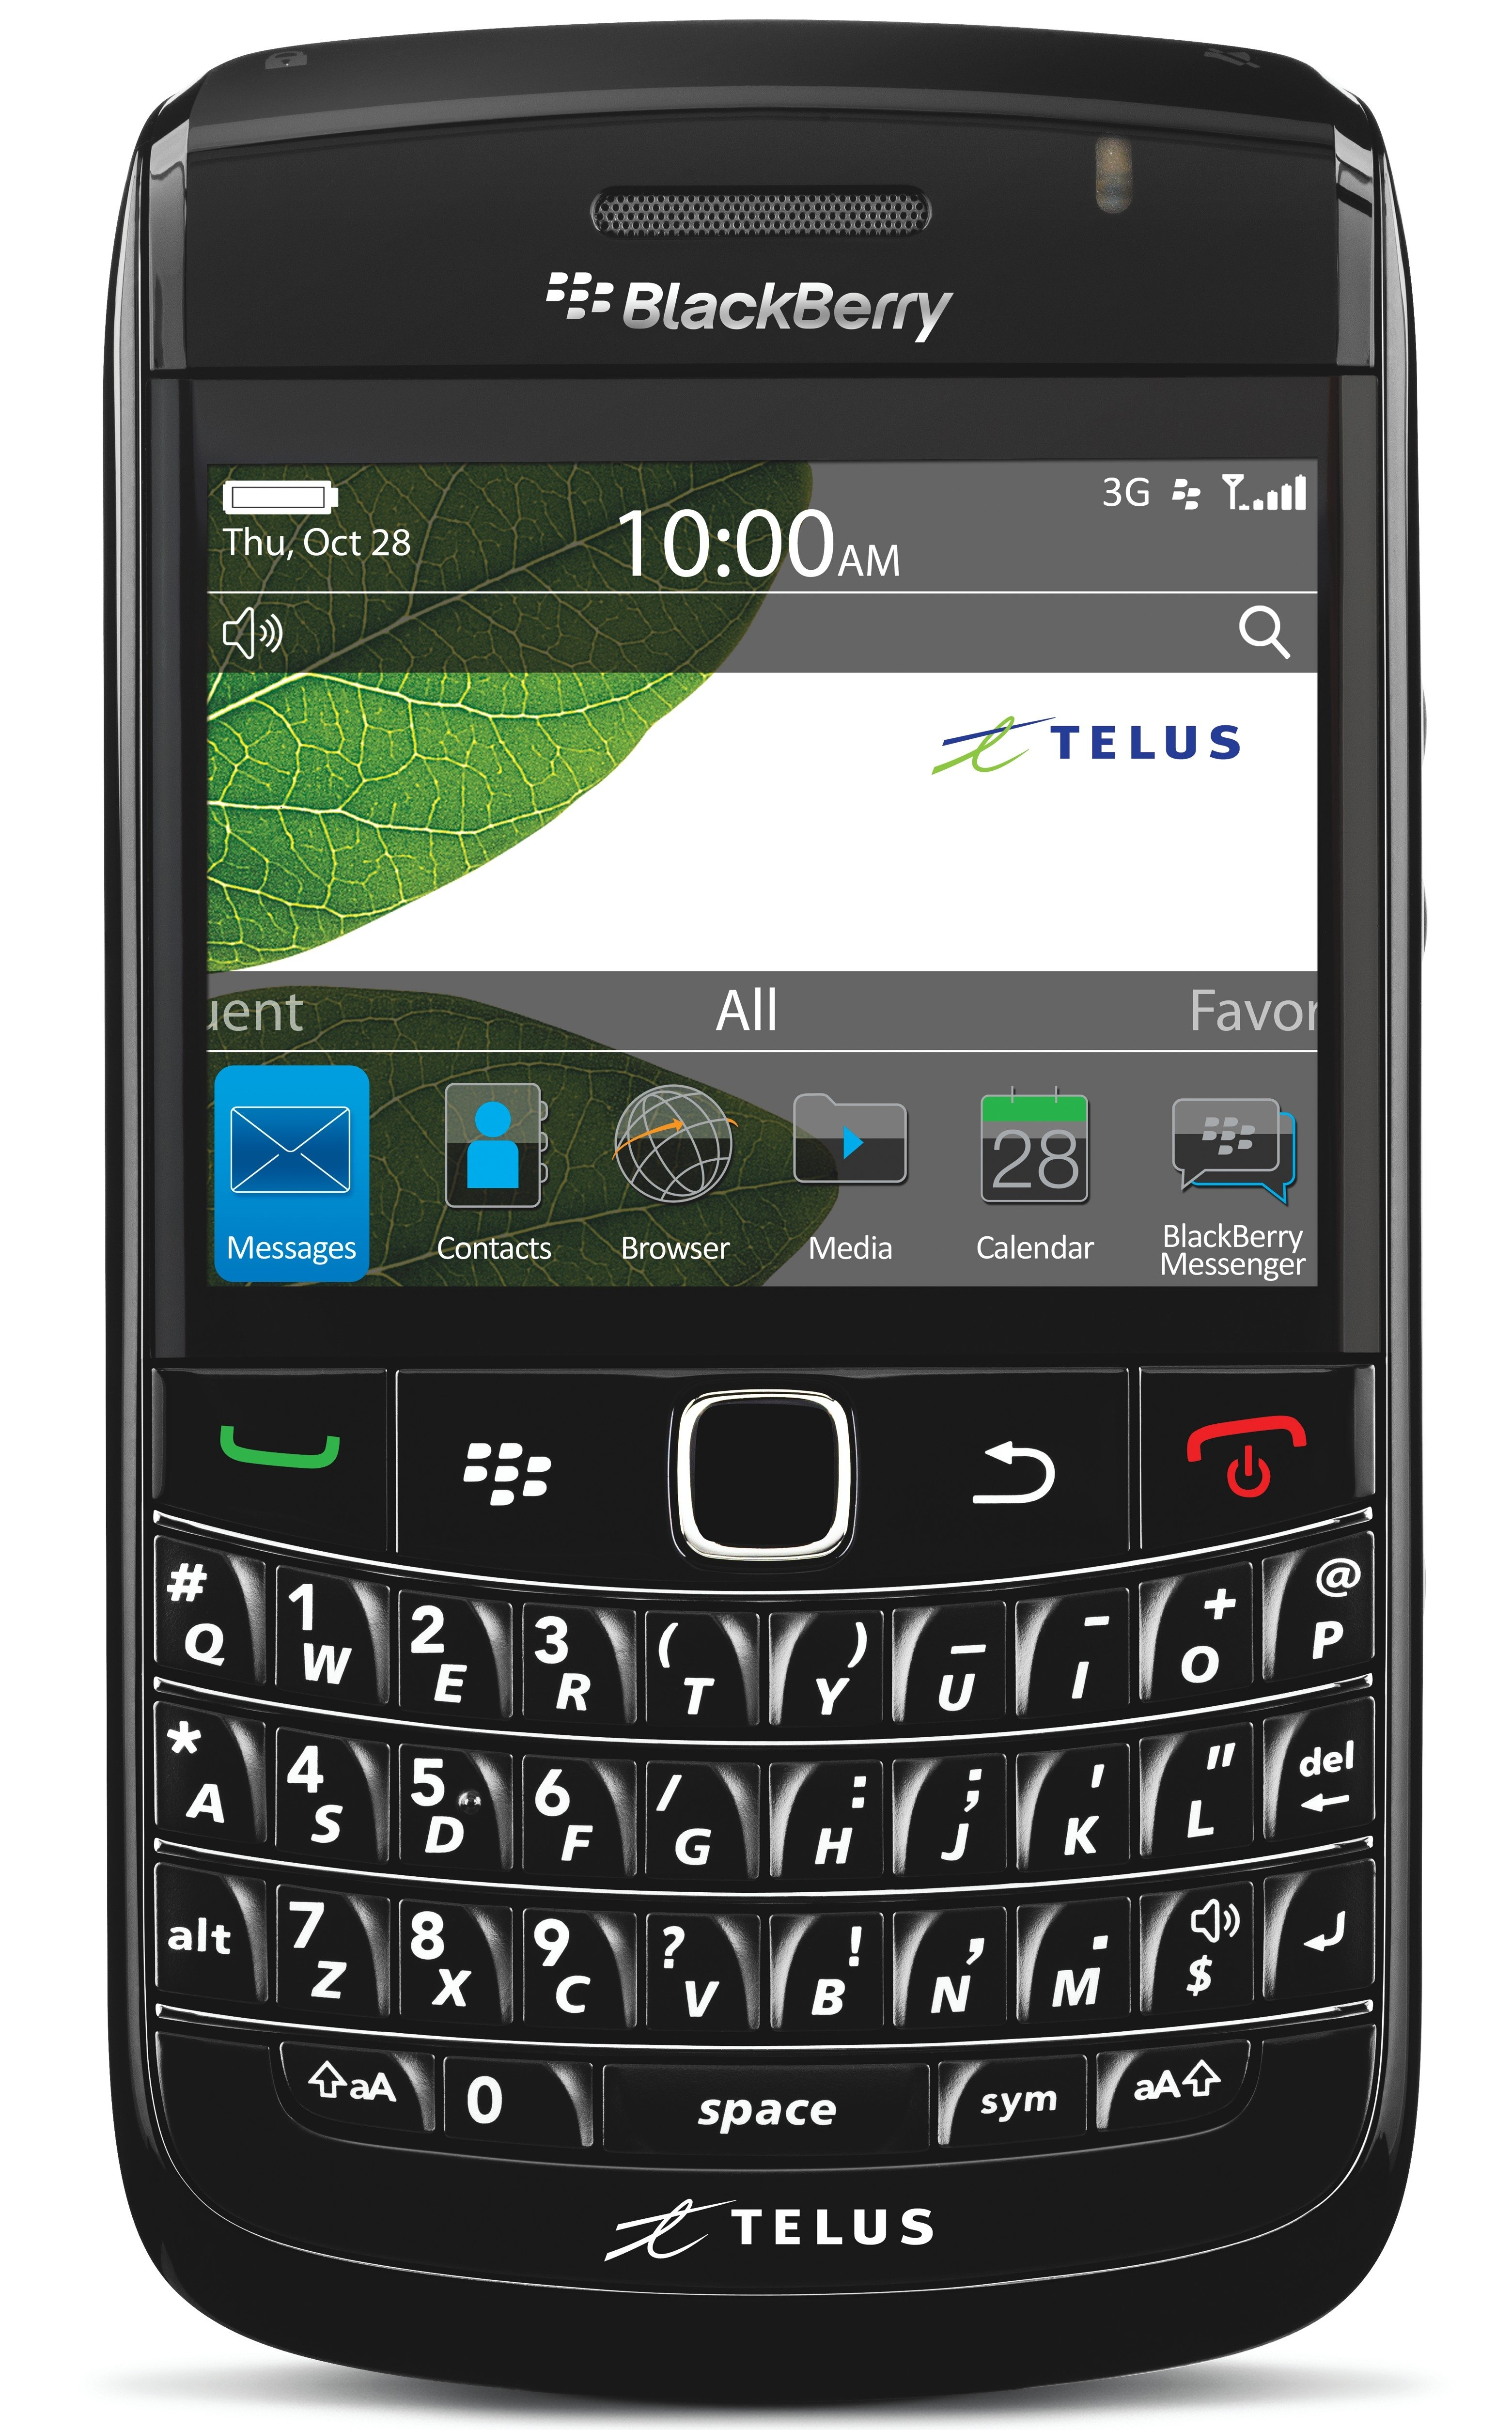 BlackBerry-9780-Telus